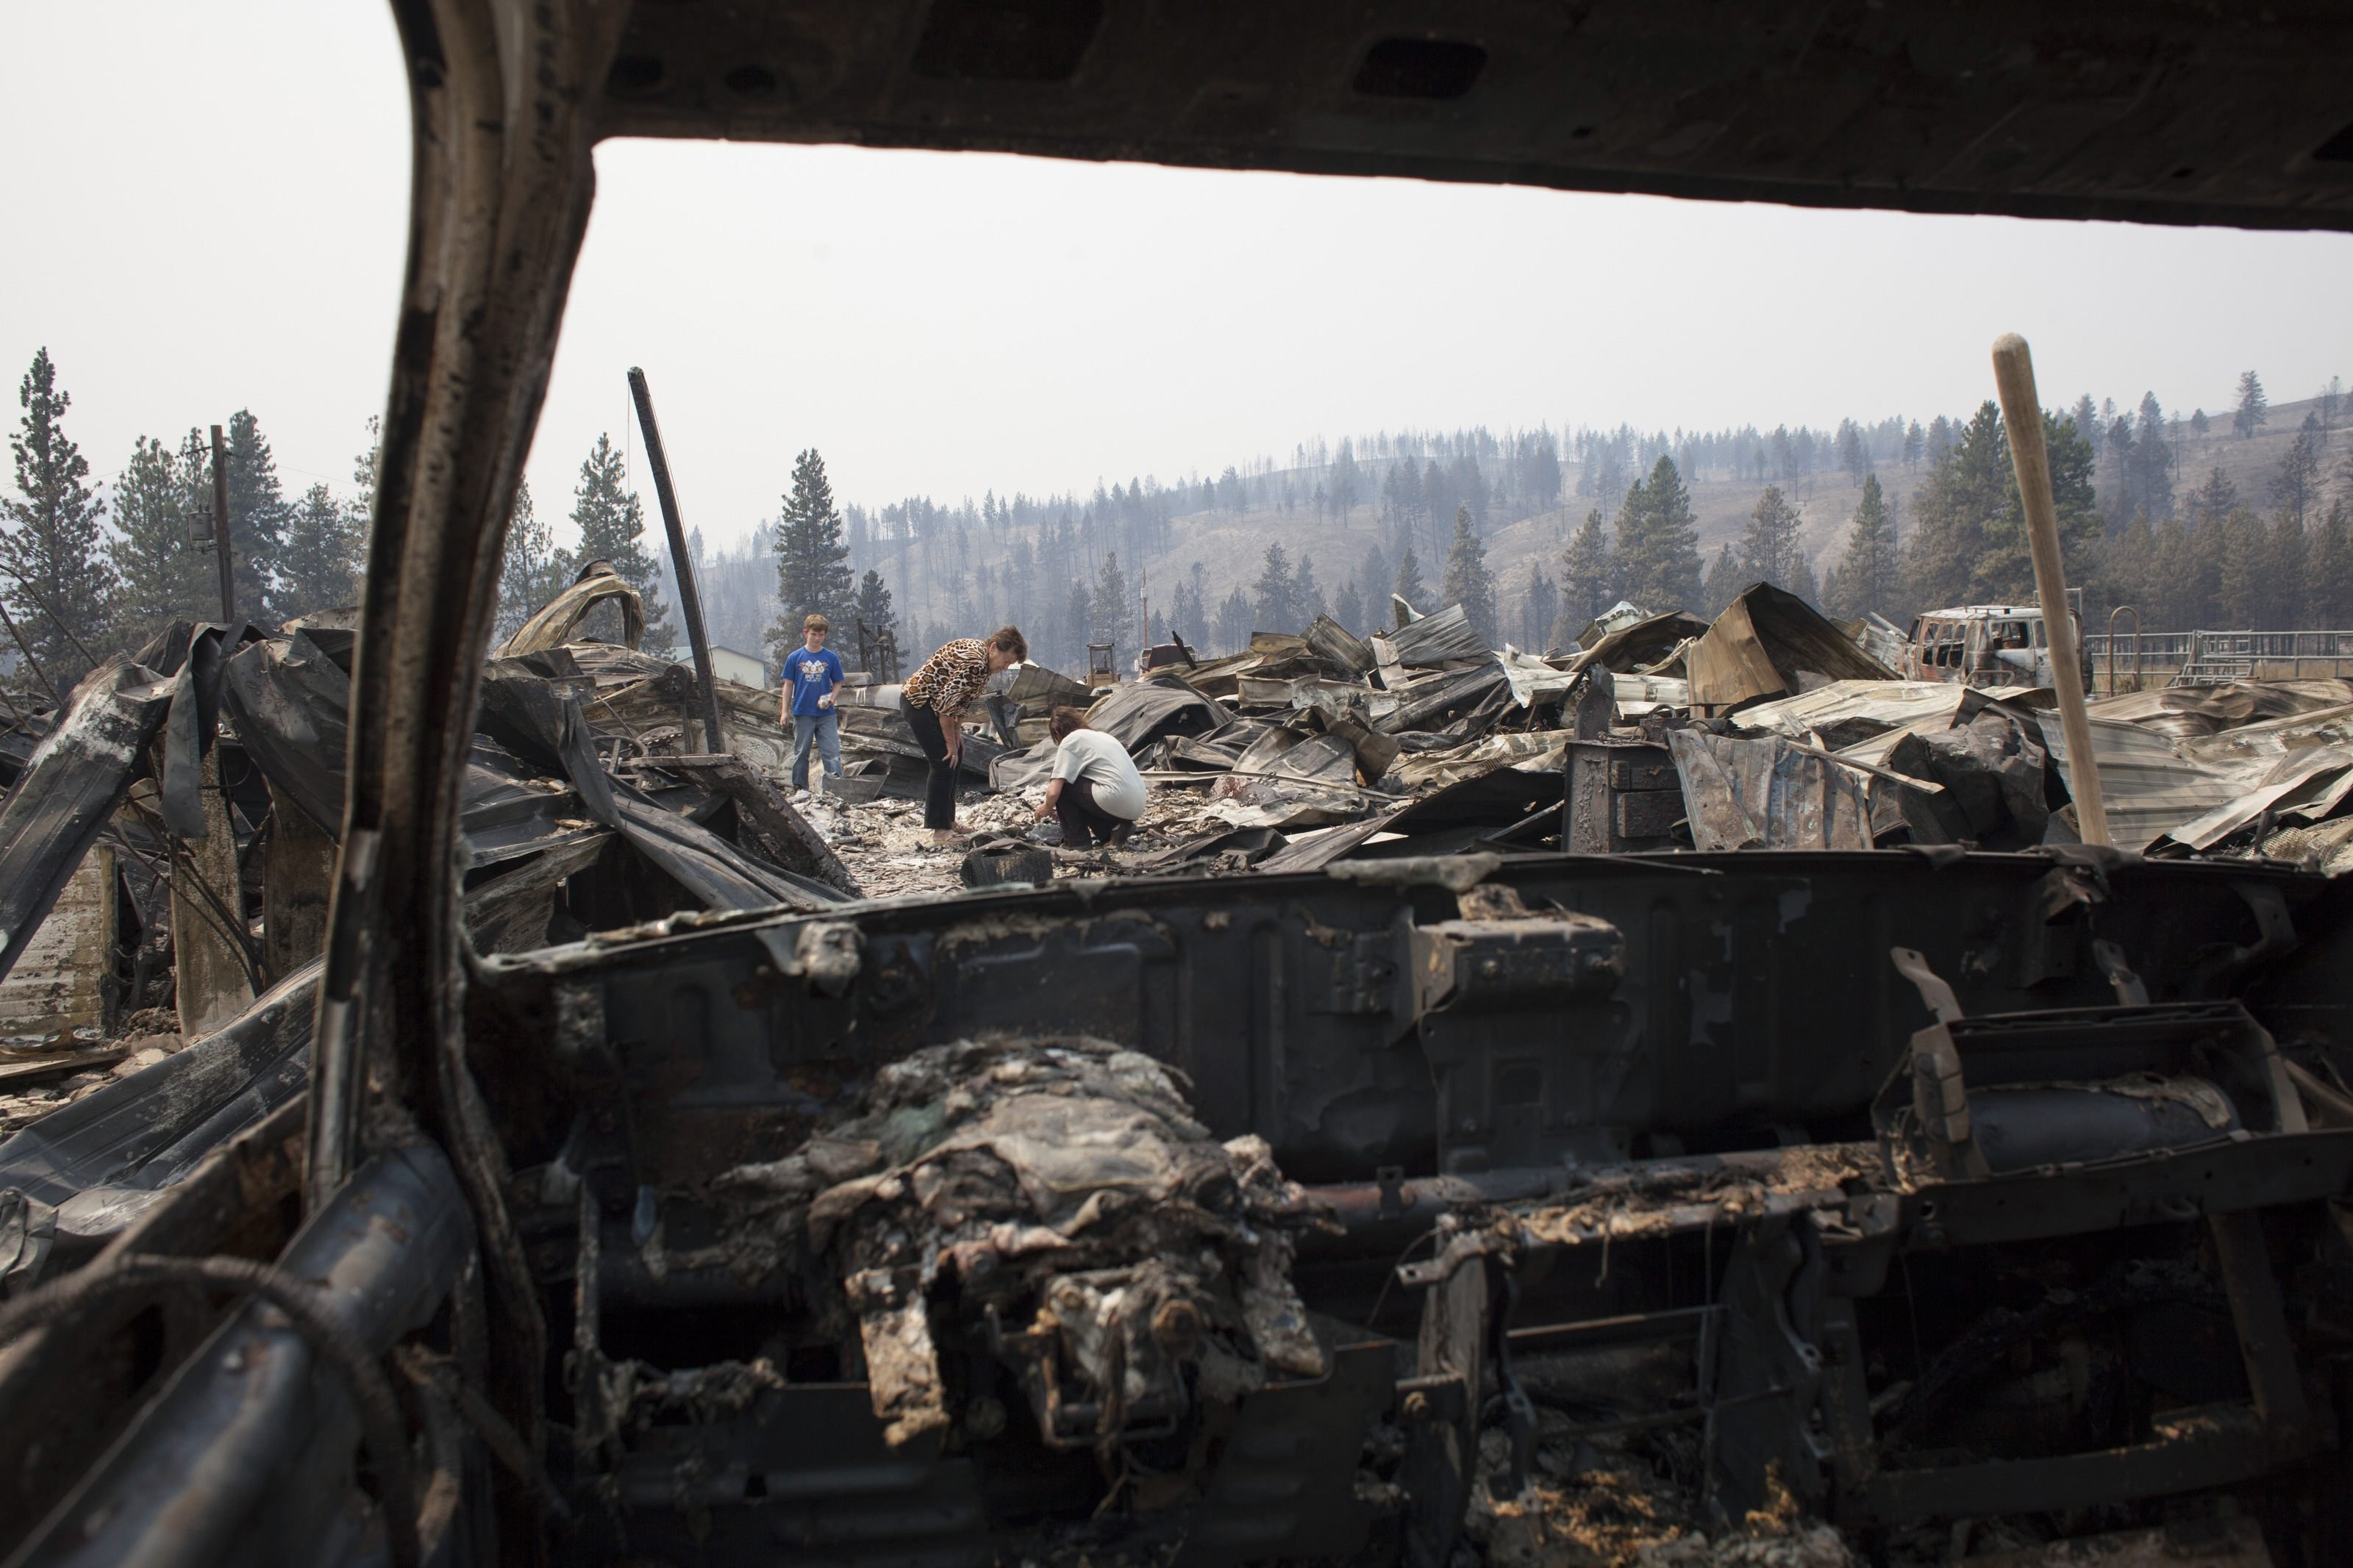 Seen through the windshield of a burnt vehicle, Mim Morris (C) looks through the remnants of her home, which was destroyed by the Carlton Complex Fire, as her grandson, Sean Lafer (L), 12 , and daughter, Laura Lafer (R), join her near Malott, Washington on July 20, 2014.